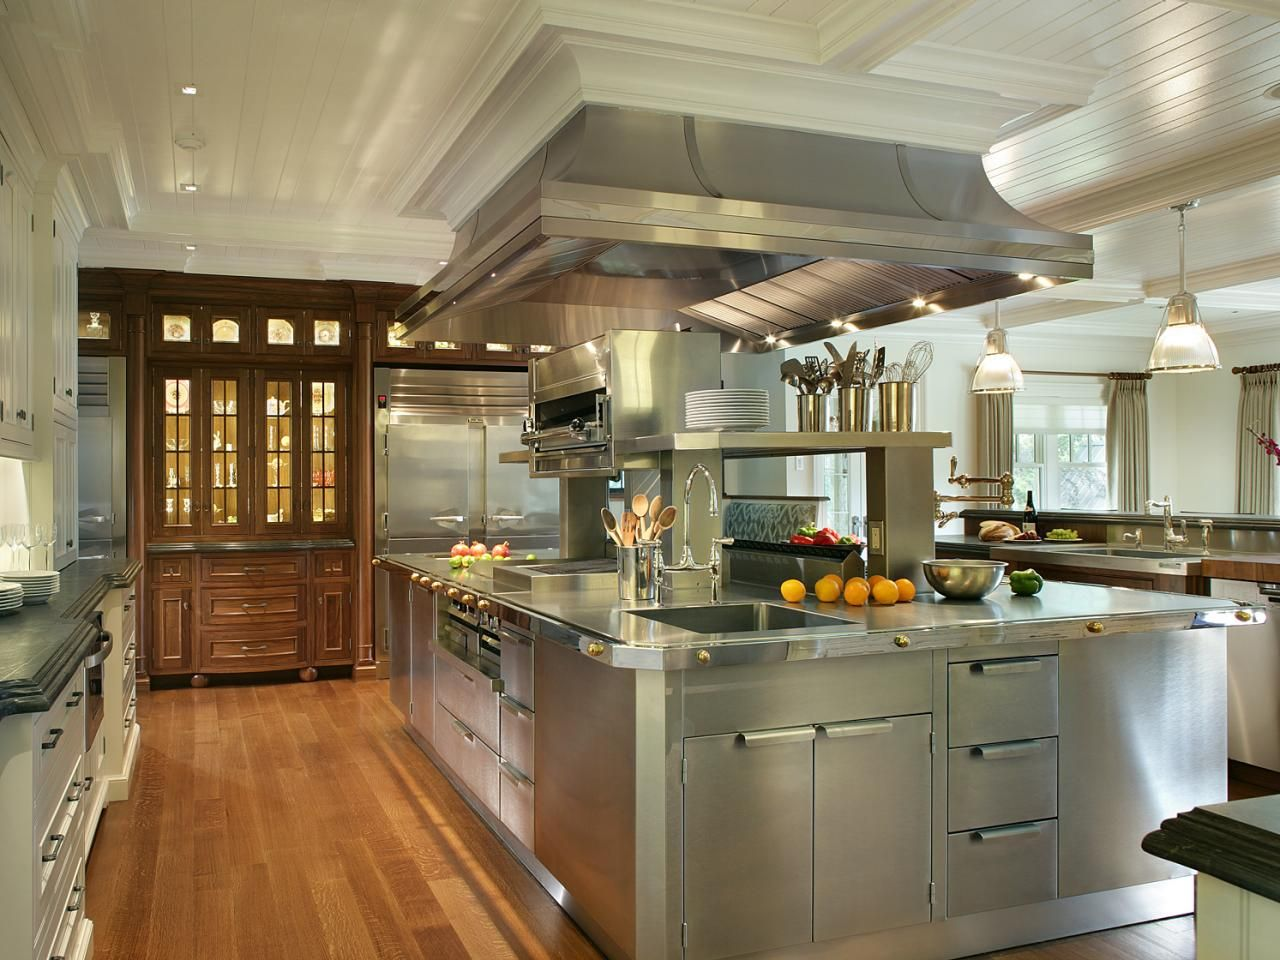 Dream Kitchen Design a chef's dream kitchen | professional chef, hgtv and kitchens